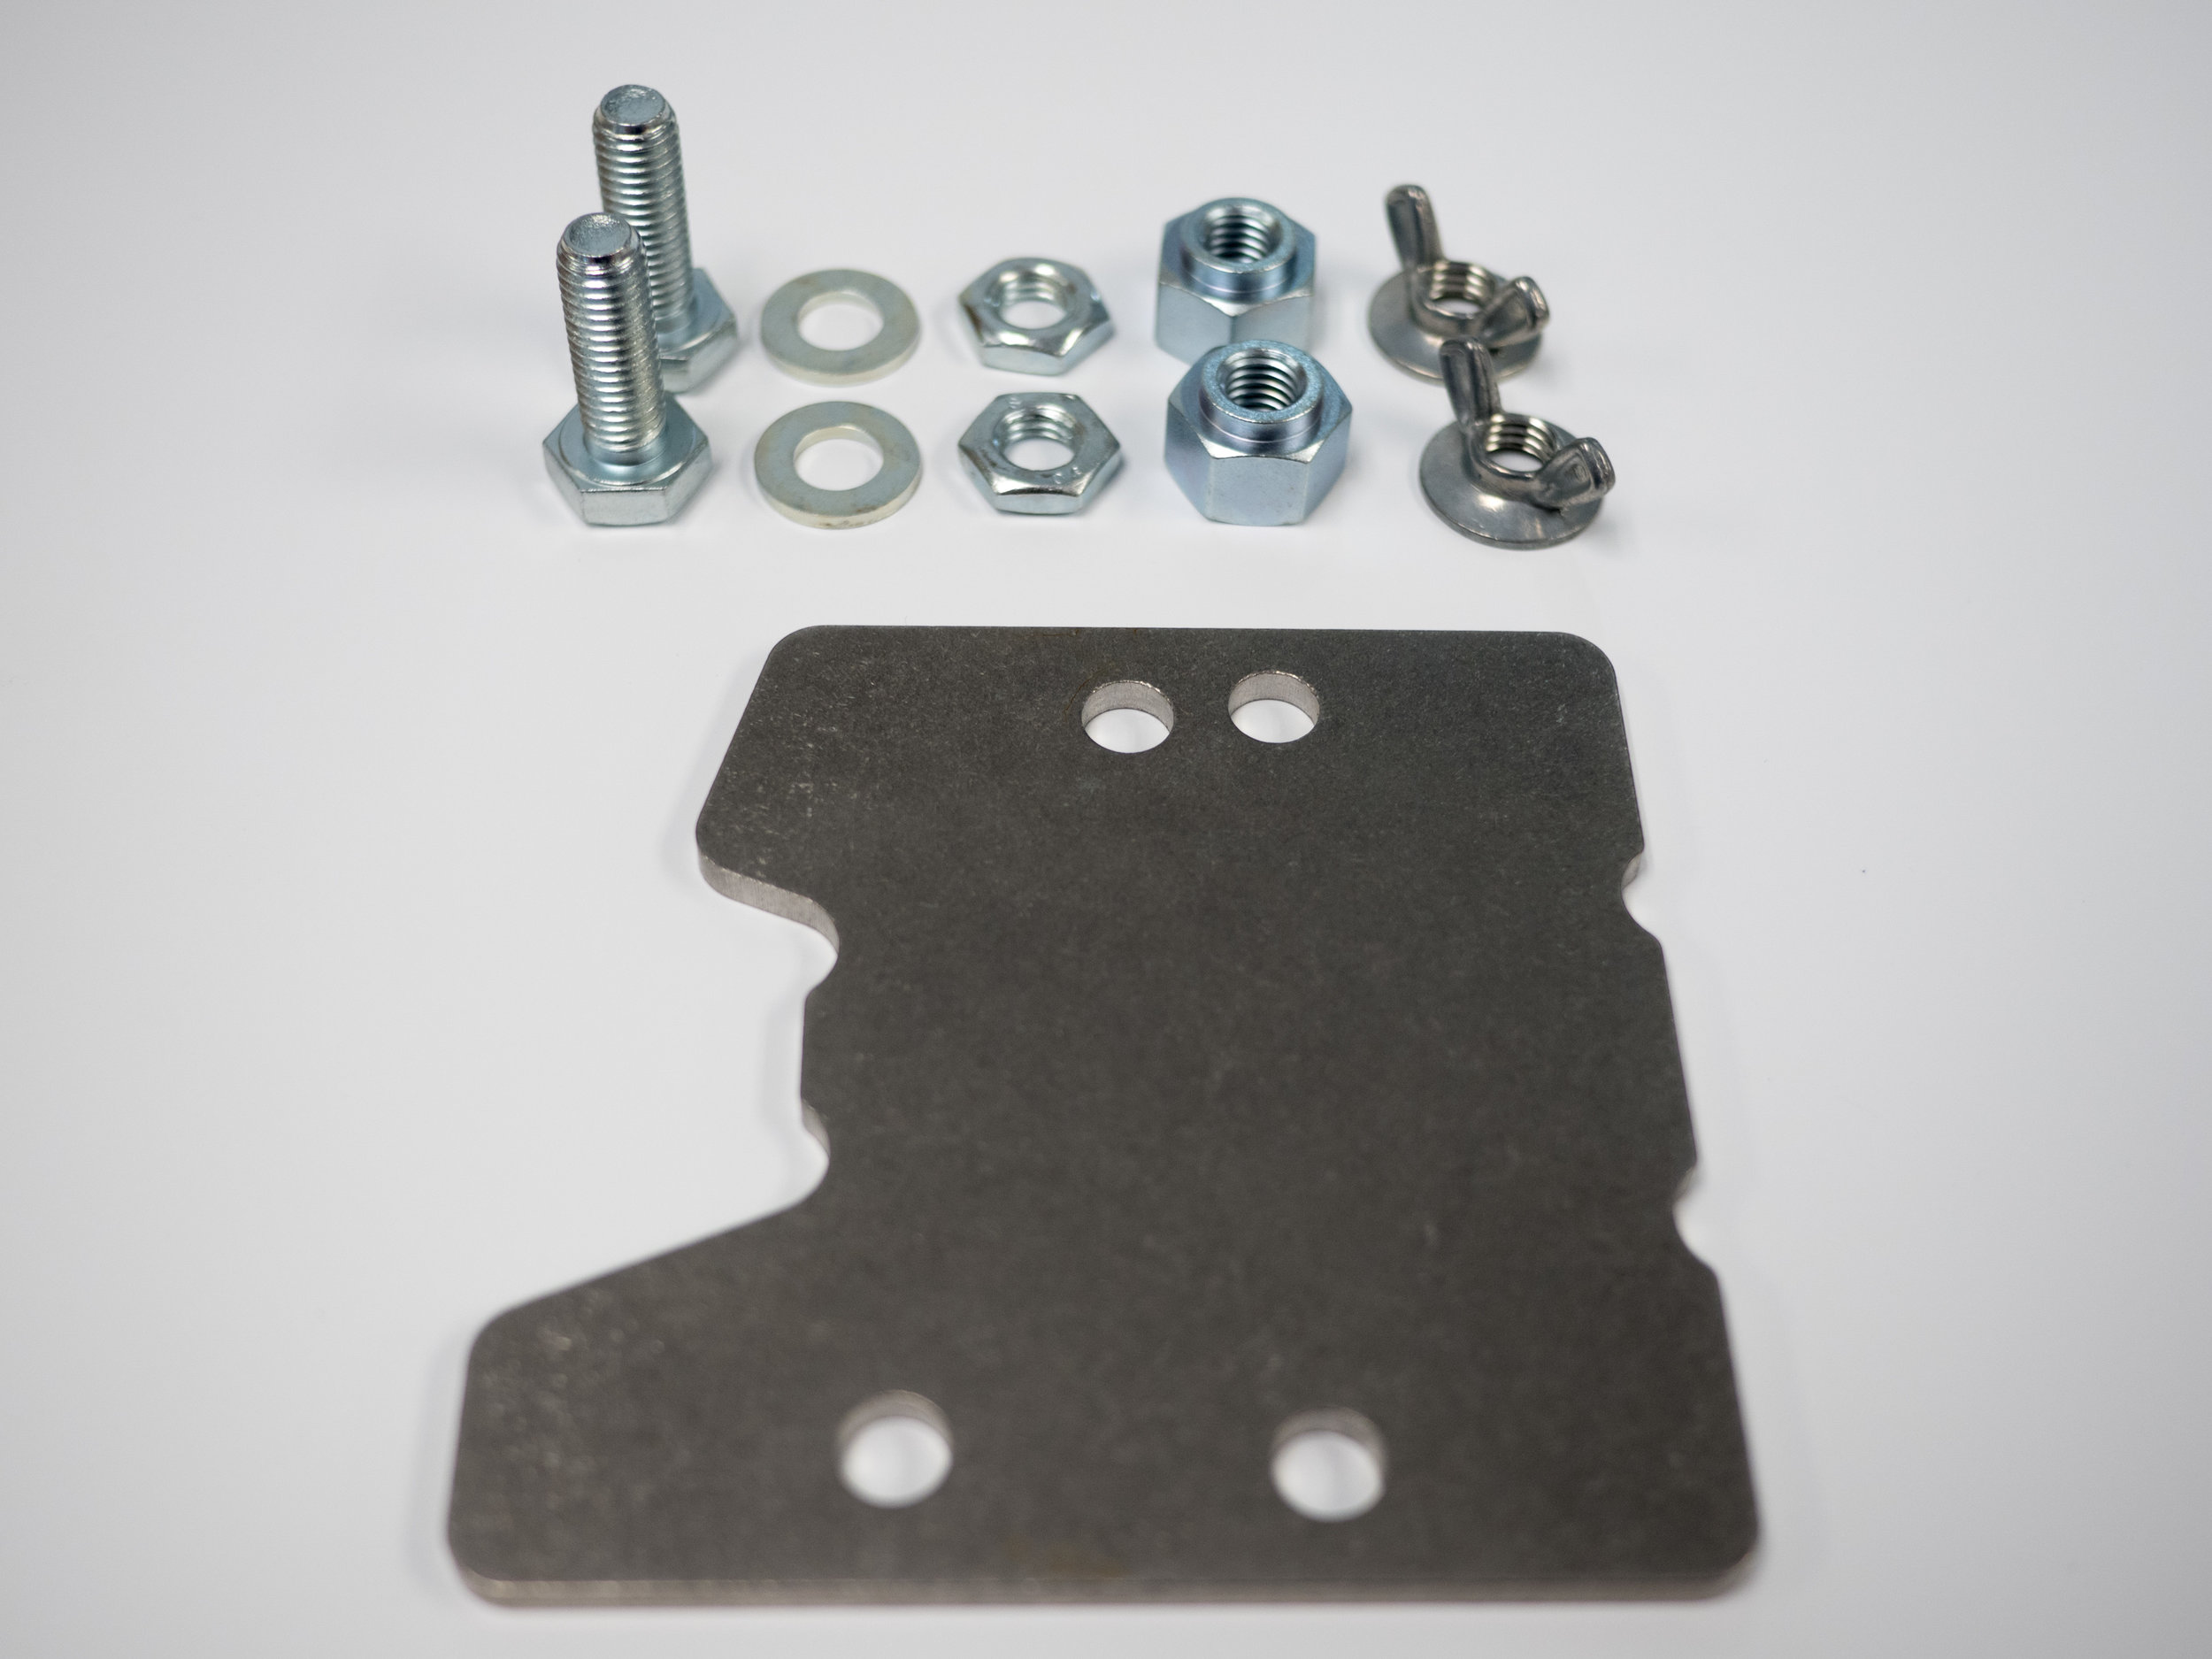 Honda Blade Adapter Kit   - $23.00